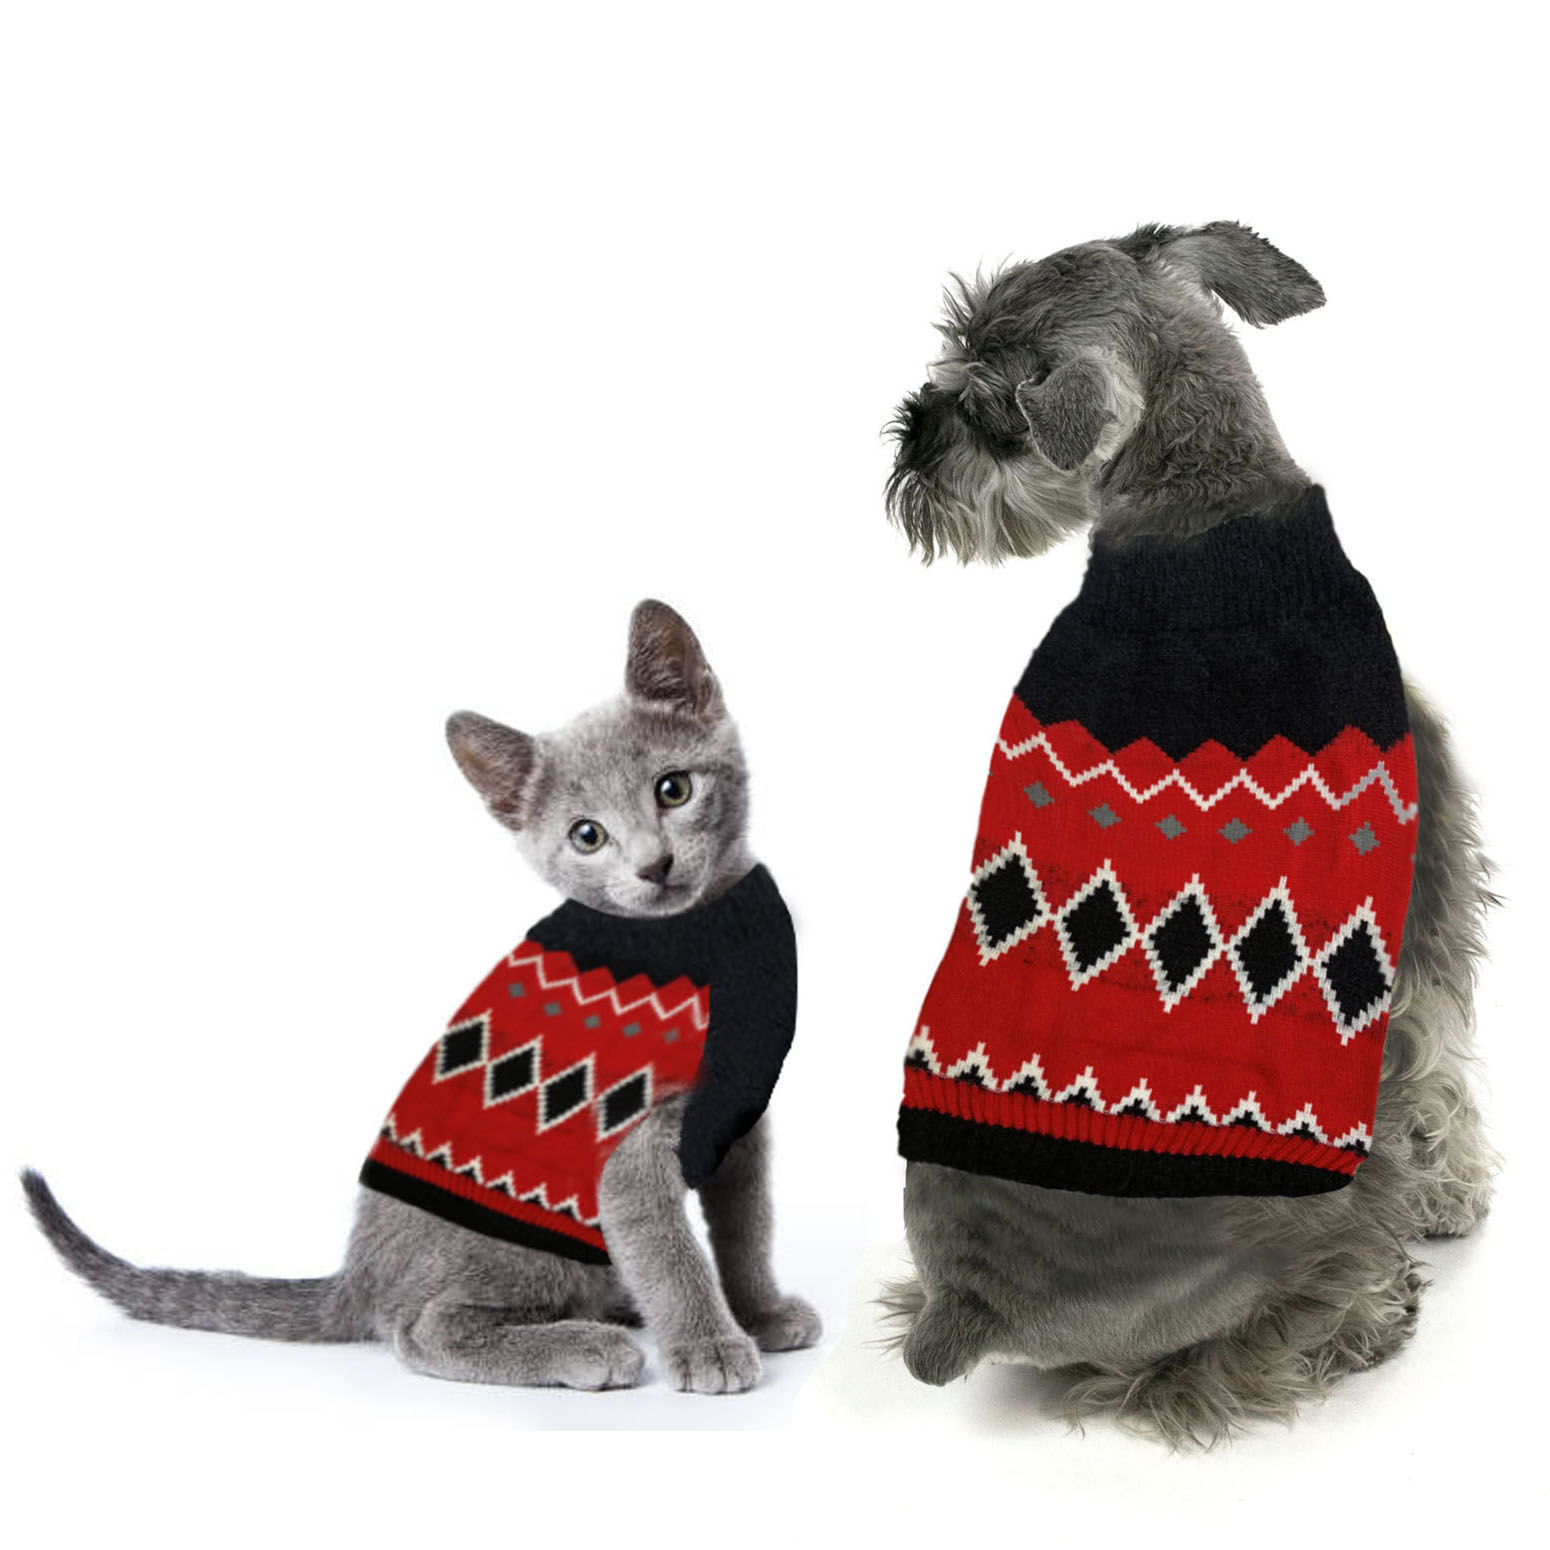 Gifts for Pet Lovers & Their Furry Friends